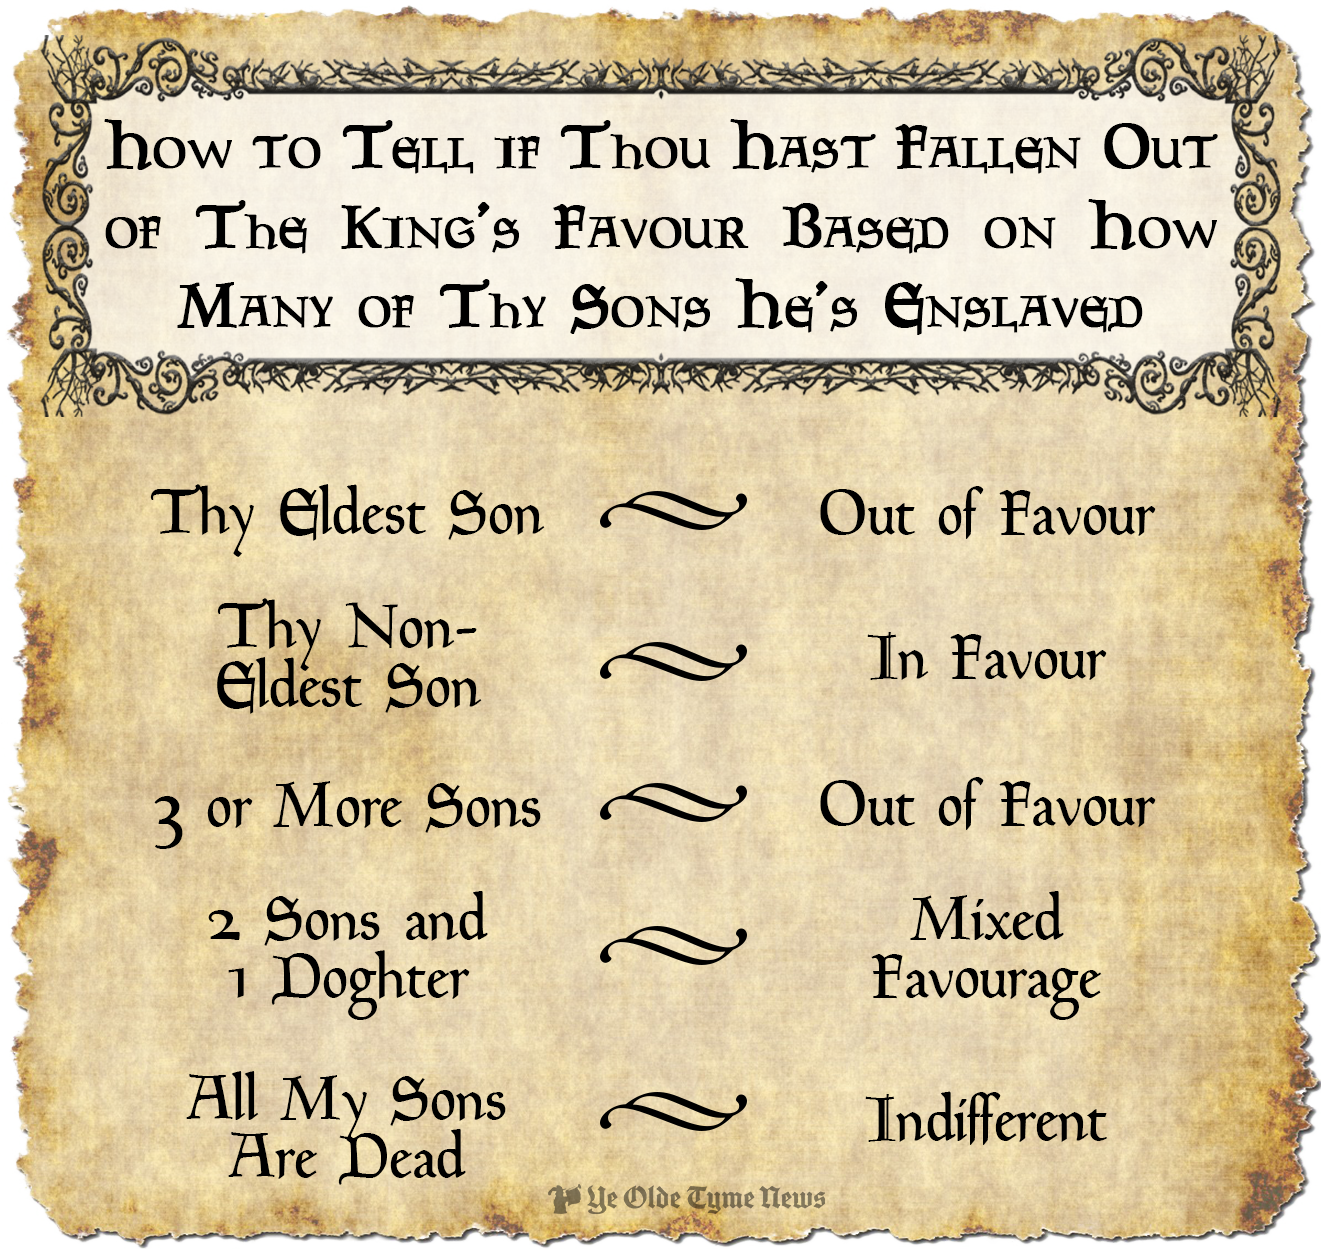 how to tell if thou hast fallen out of the king's favour chart